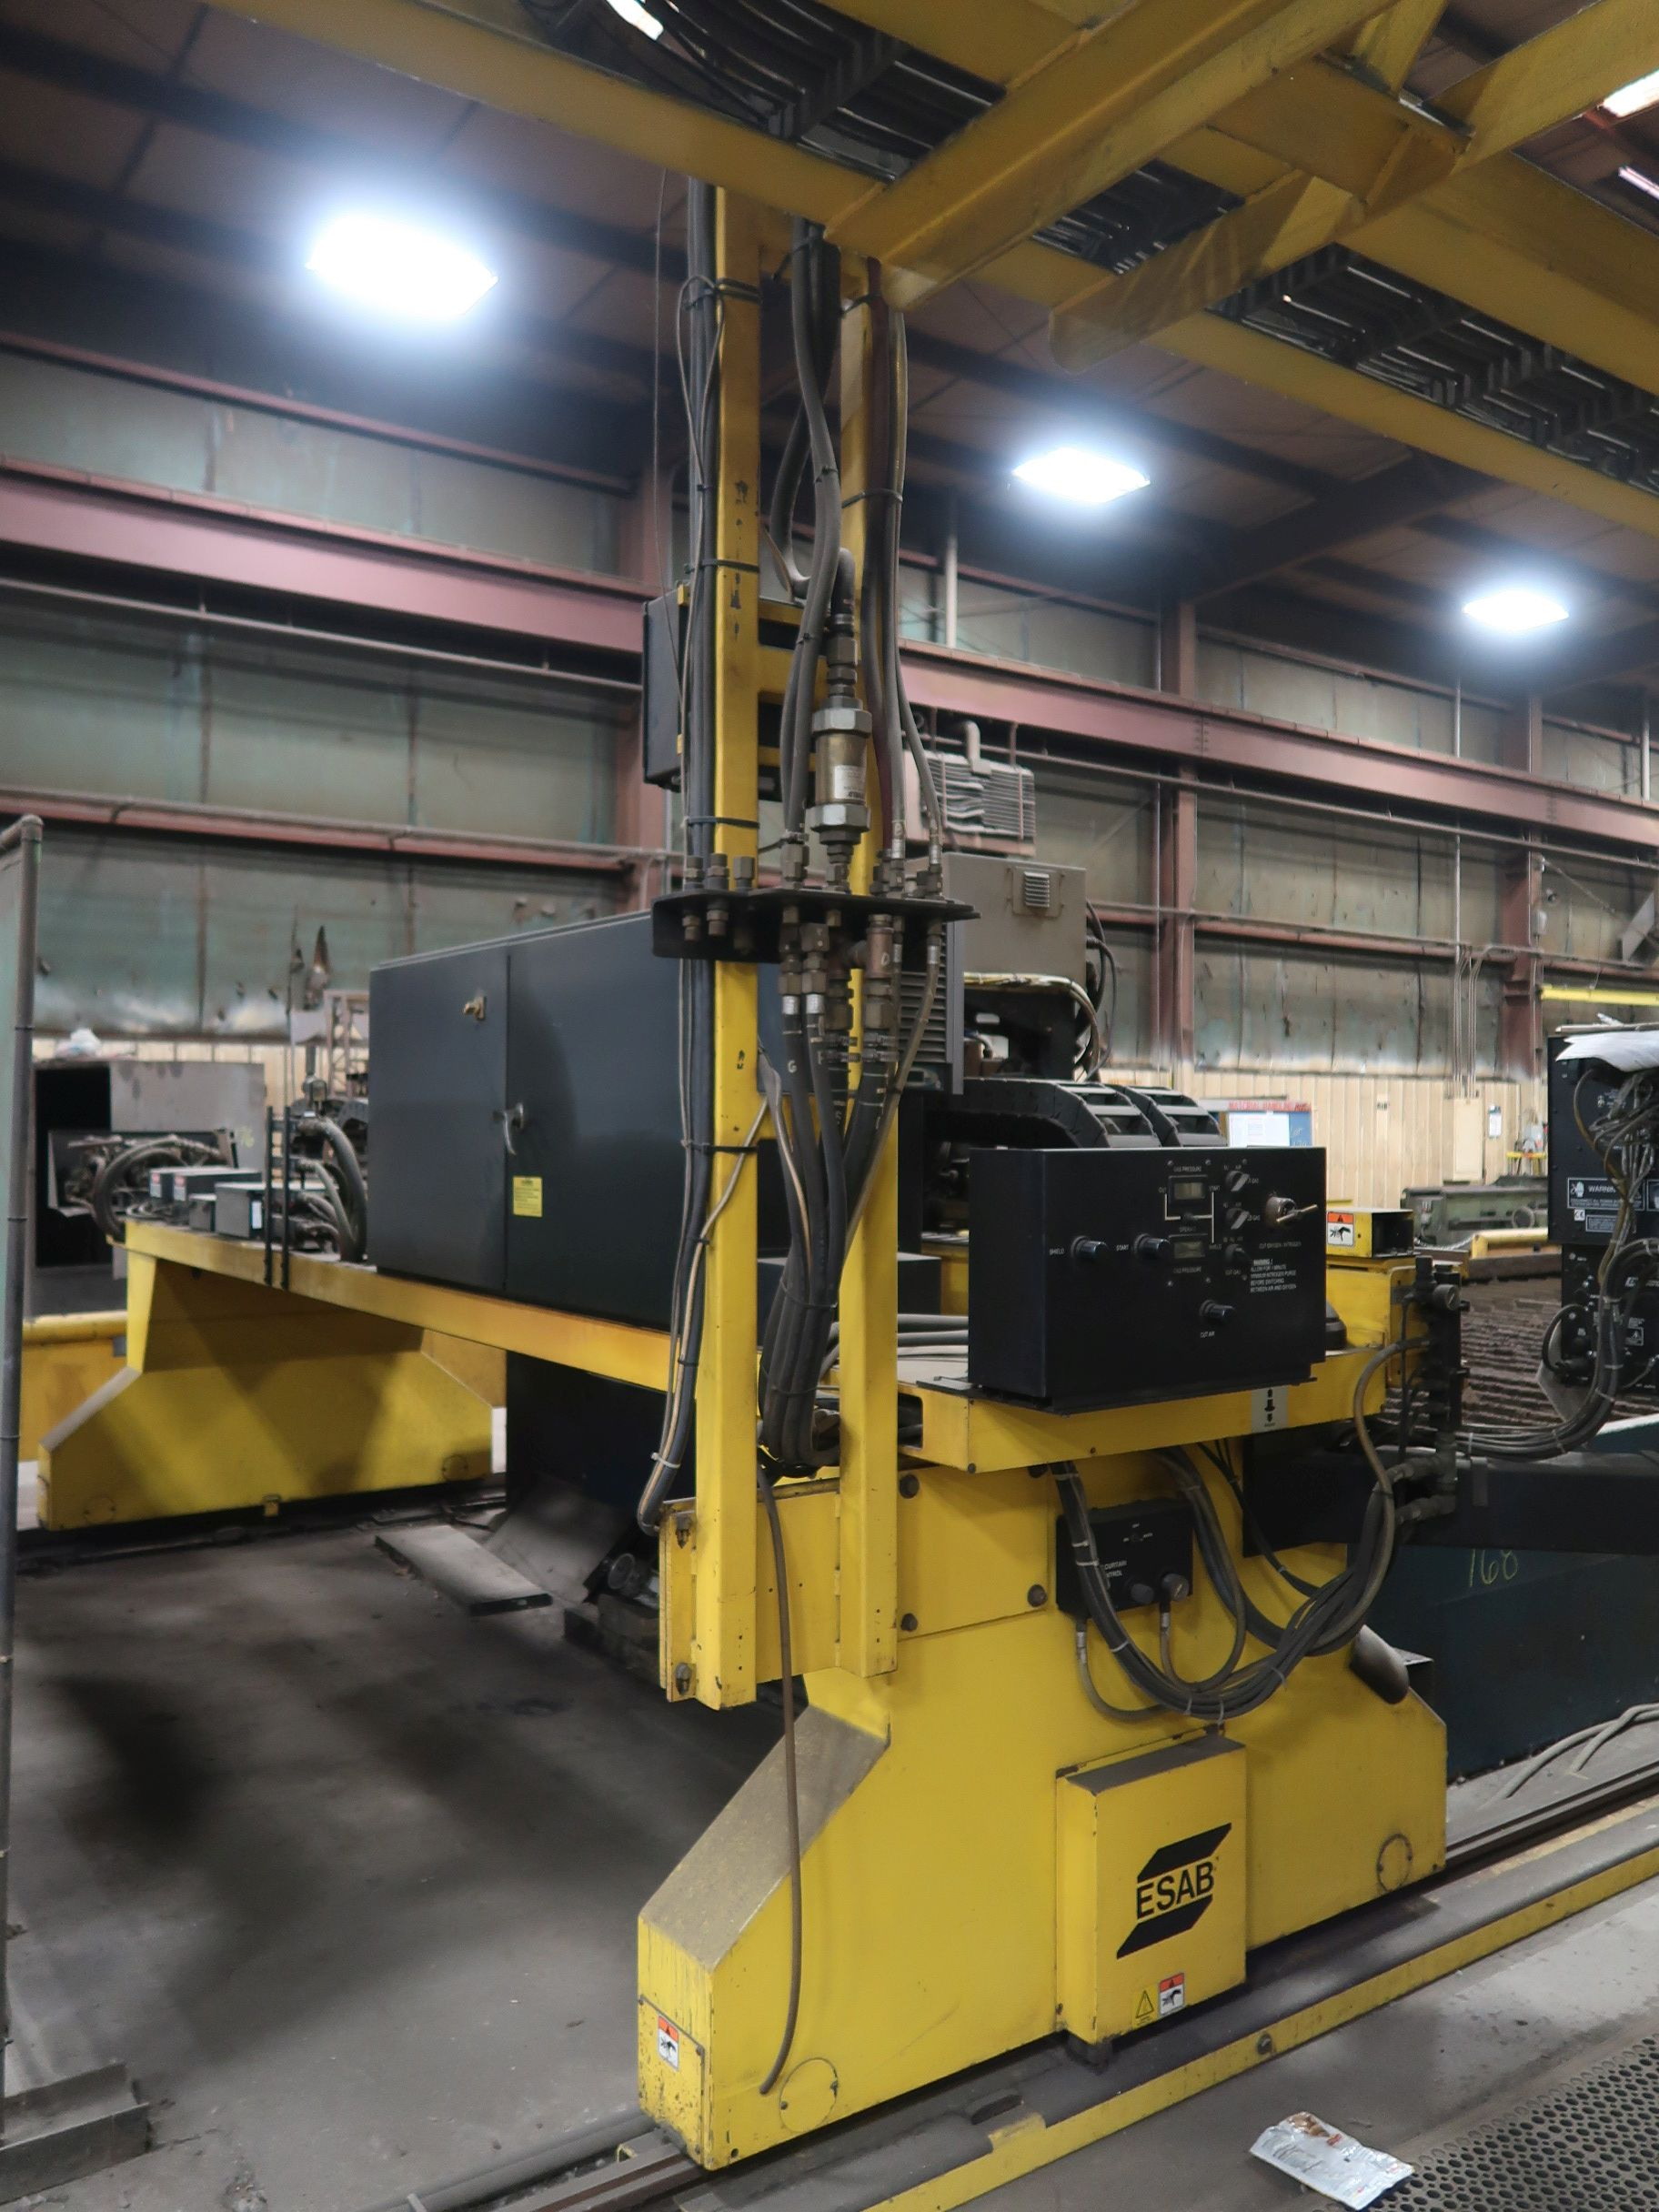 12' X 40' ESAB MODEL AVENGER 1-12 VISION PLASMA TABLE W/ BURNY 10 CONTROL; S/N 0560986386, UPDATED - Image 12 of 23